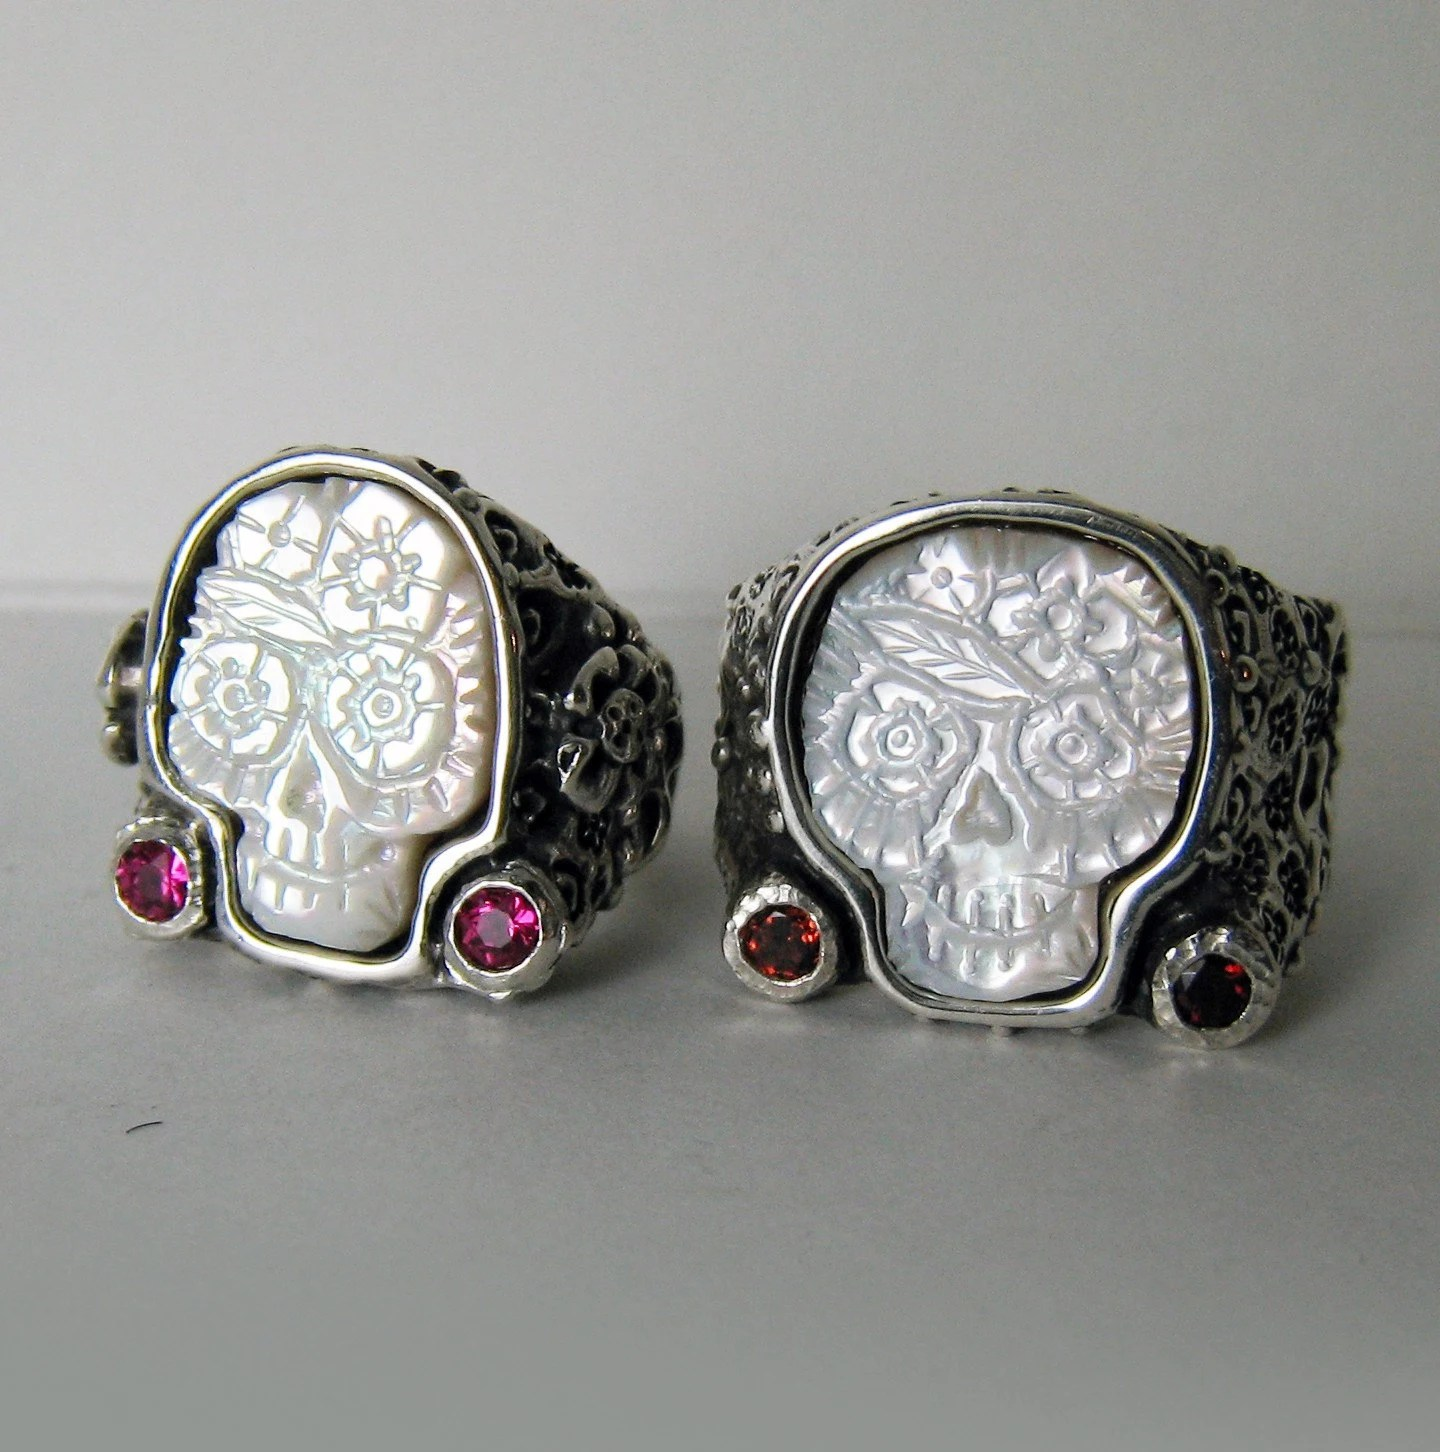 two wedding rings day of the dead sugar mens skull wedding rings zoom